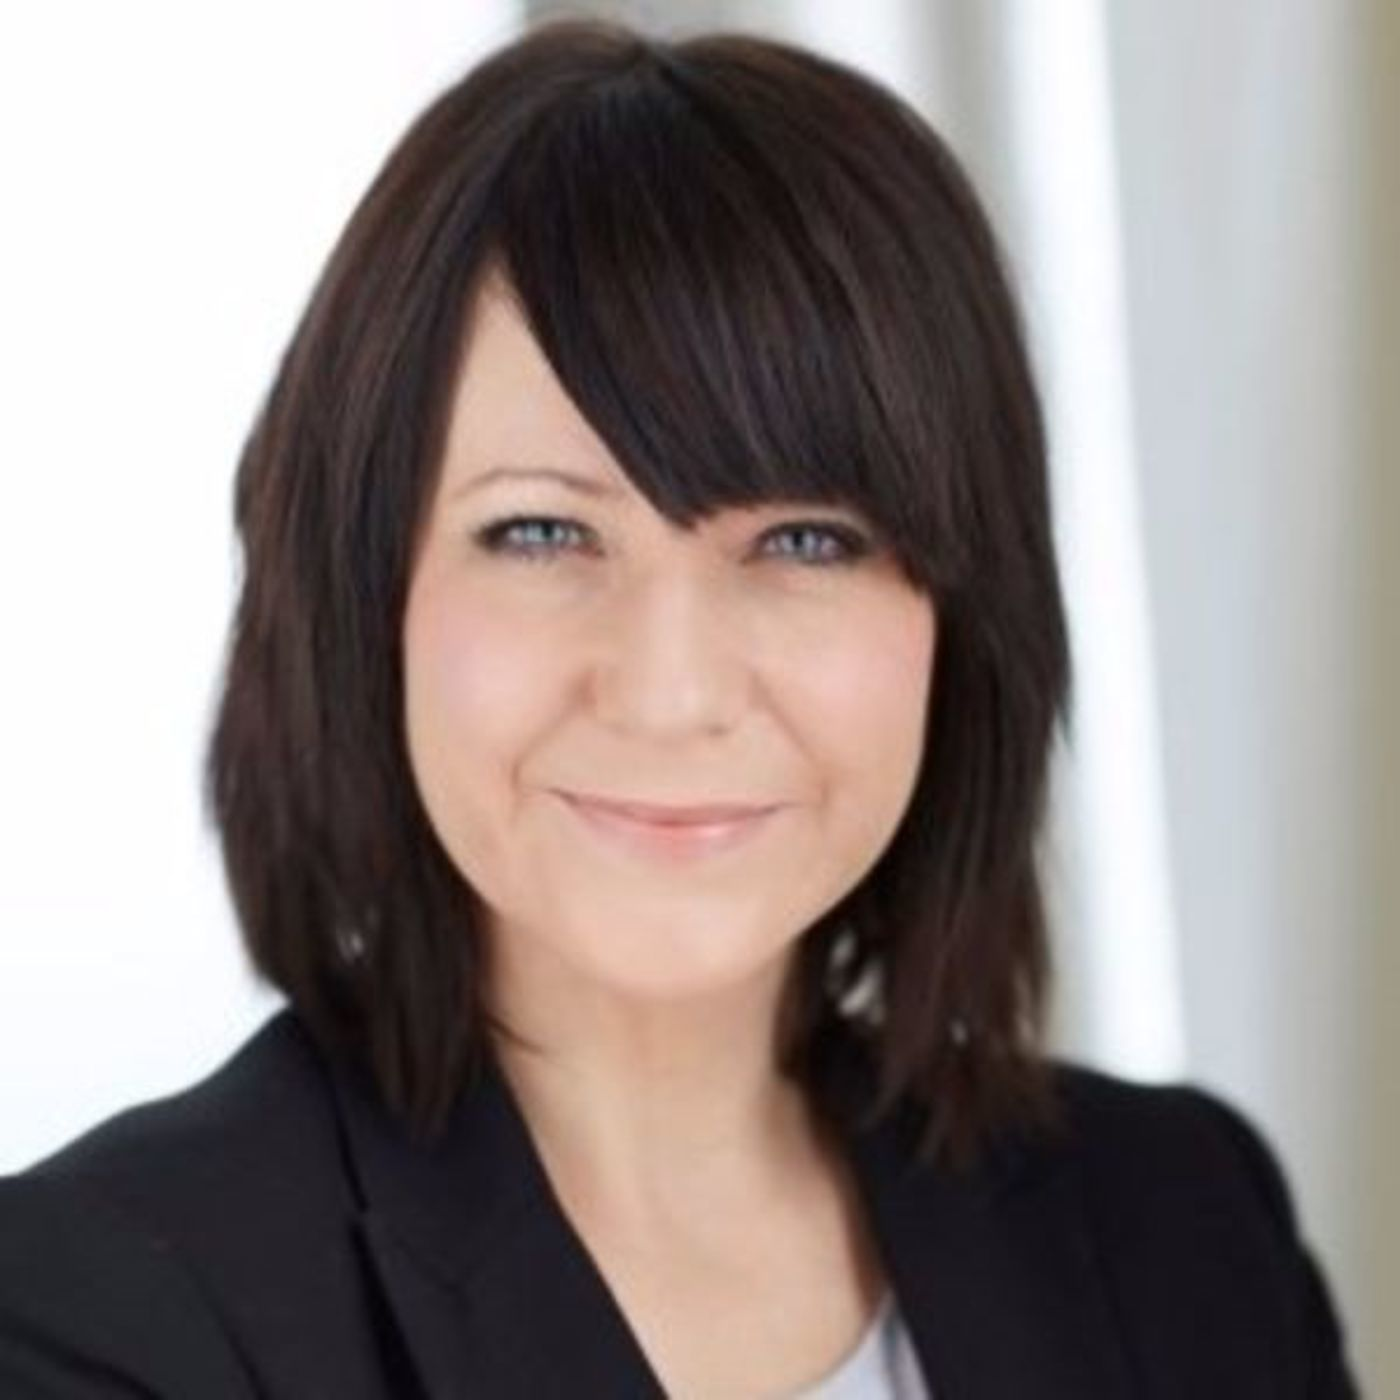 How Should Salespeople Be Recognized Socially in a Small Business? w/ Kim Benedict